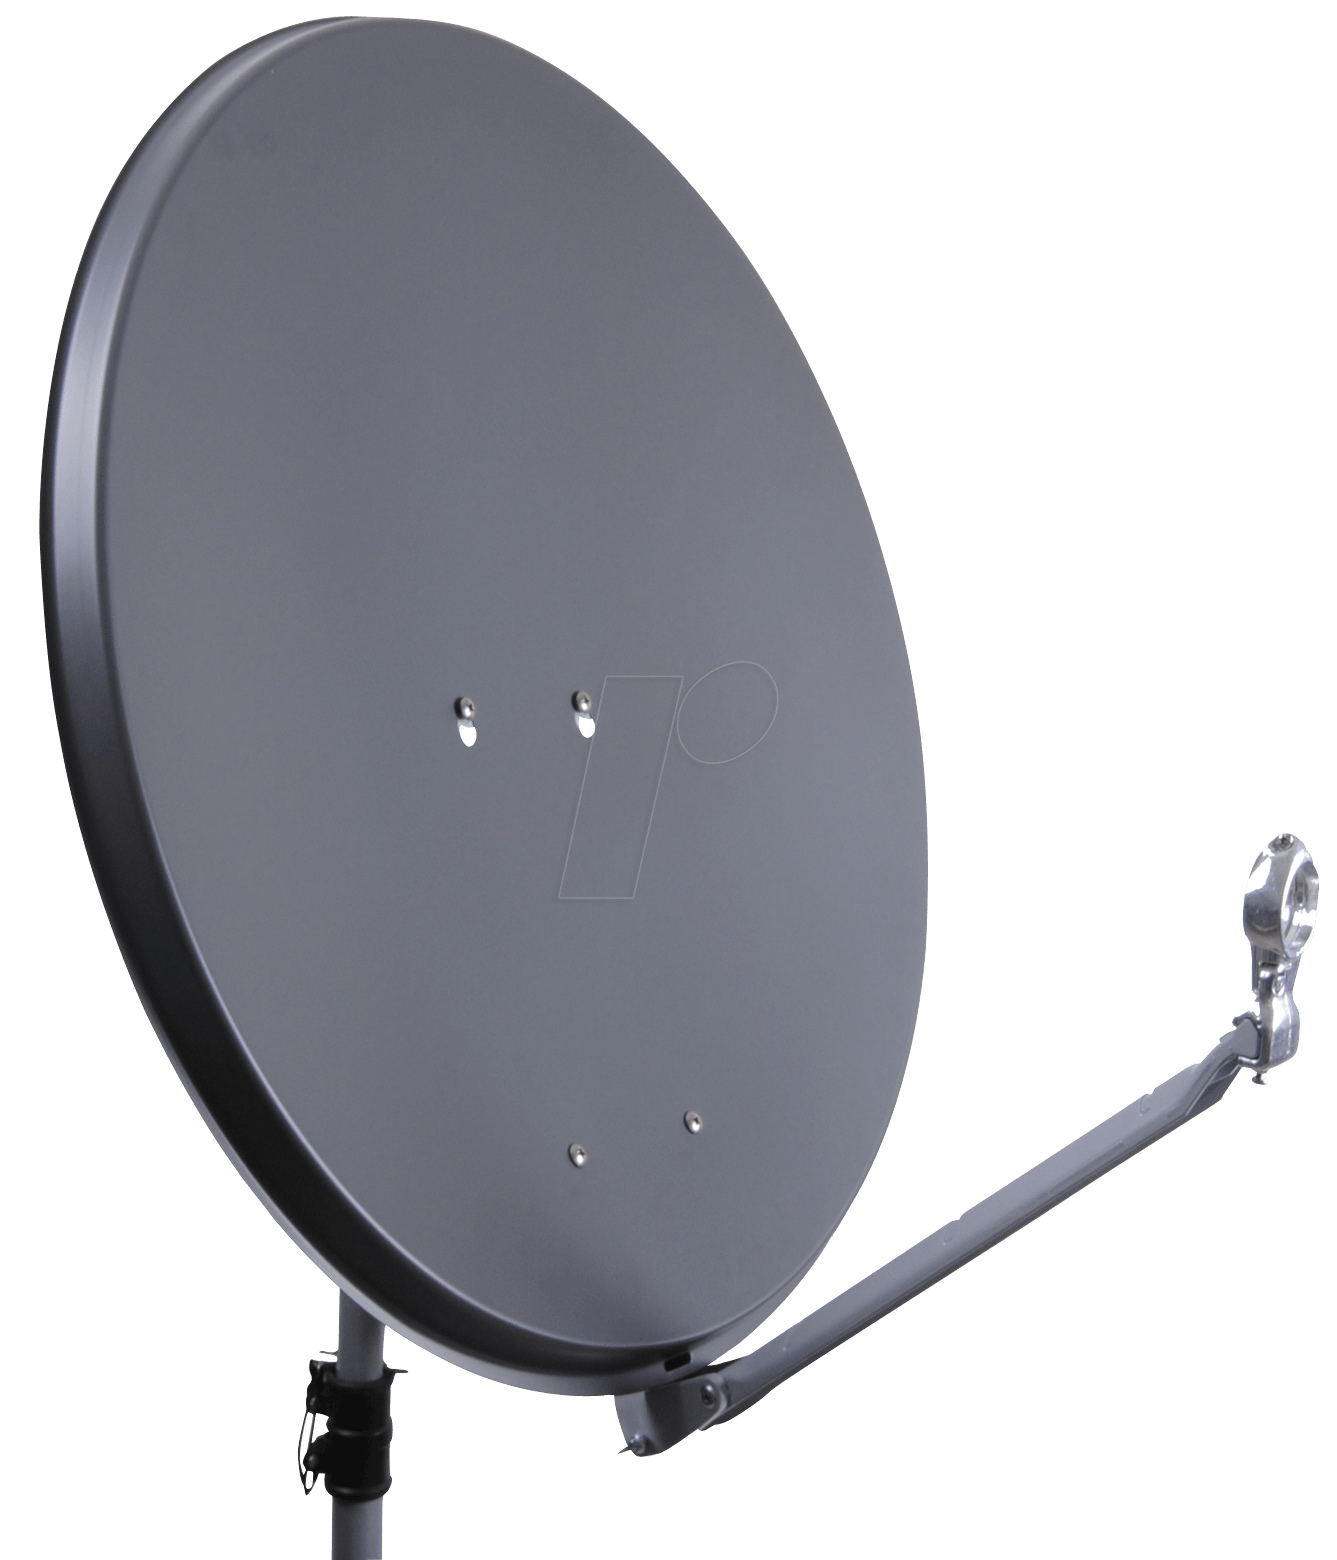 DURLINE AS 75AN: SAT satellite dish, 75 cm, anthracite at ...